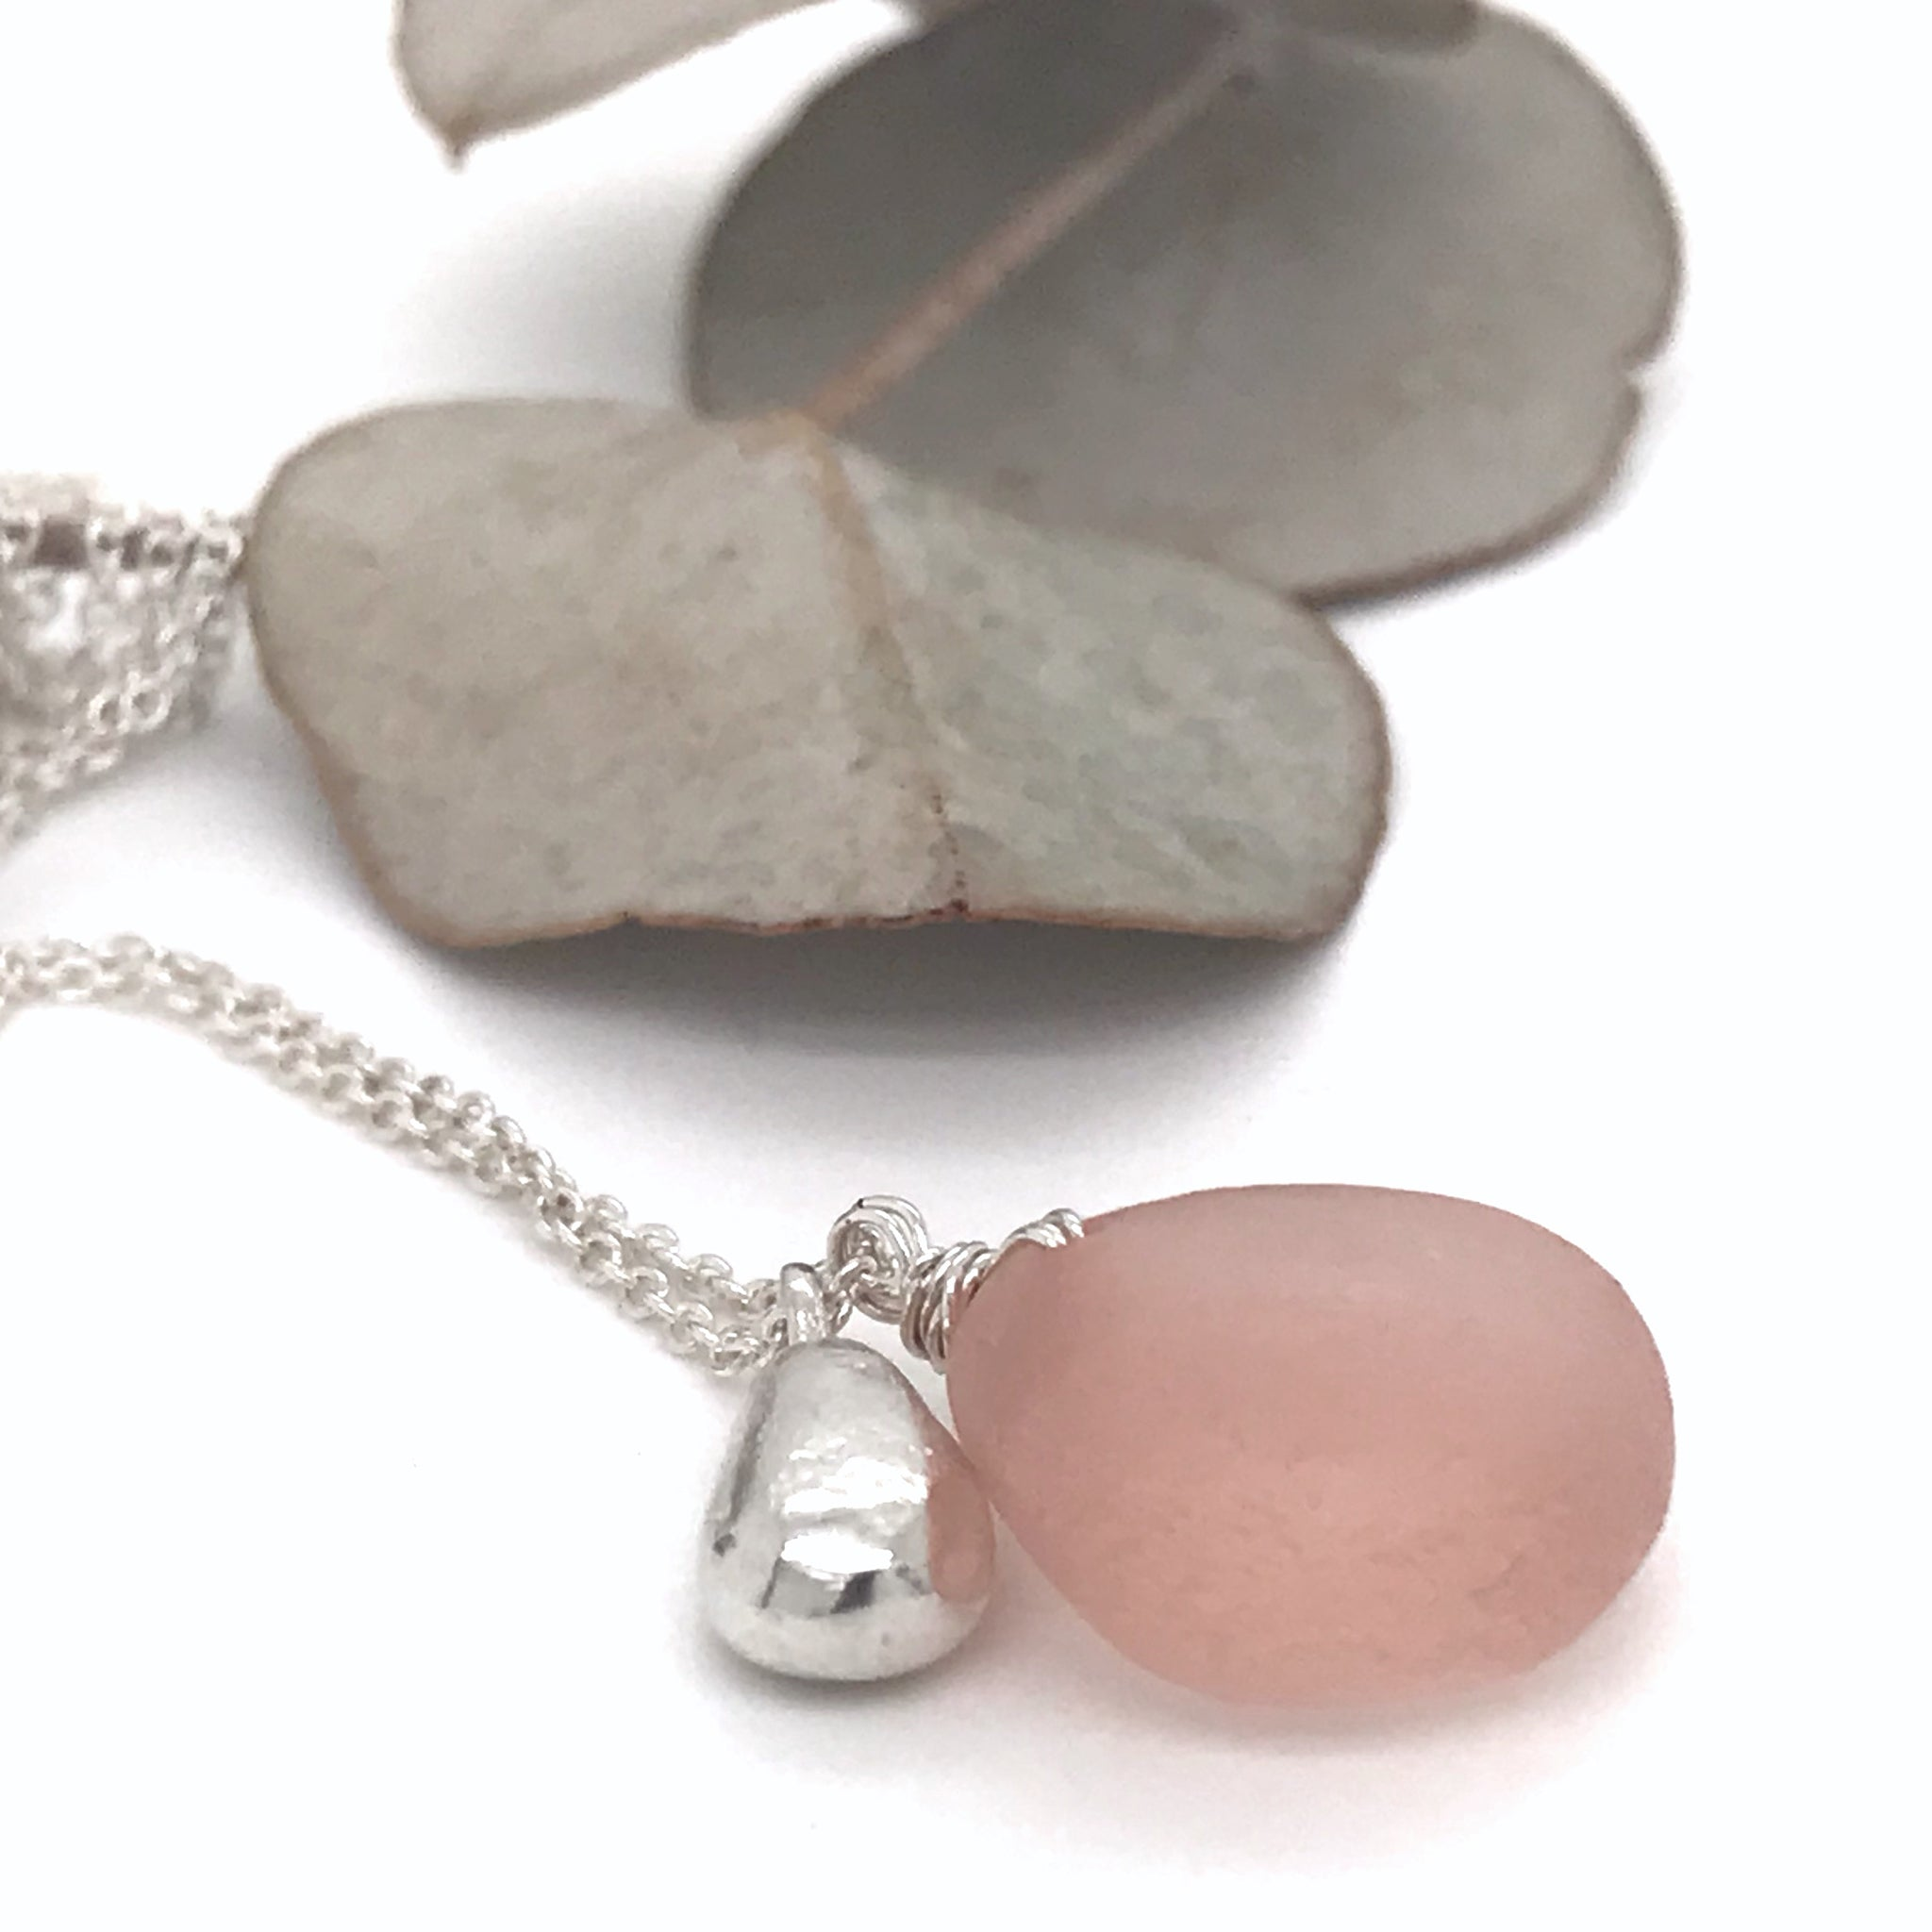 pink-seaglass-necklace-with-solid-silver-teardrop-charm-kriket-broadhurst-jewellery-Sydney